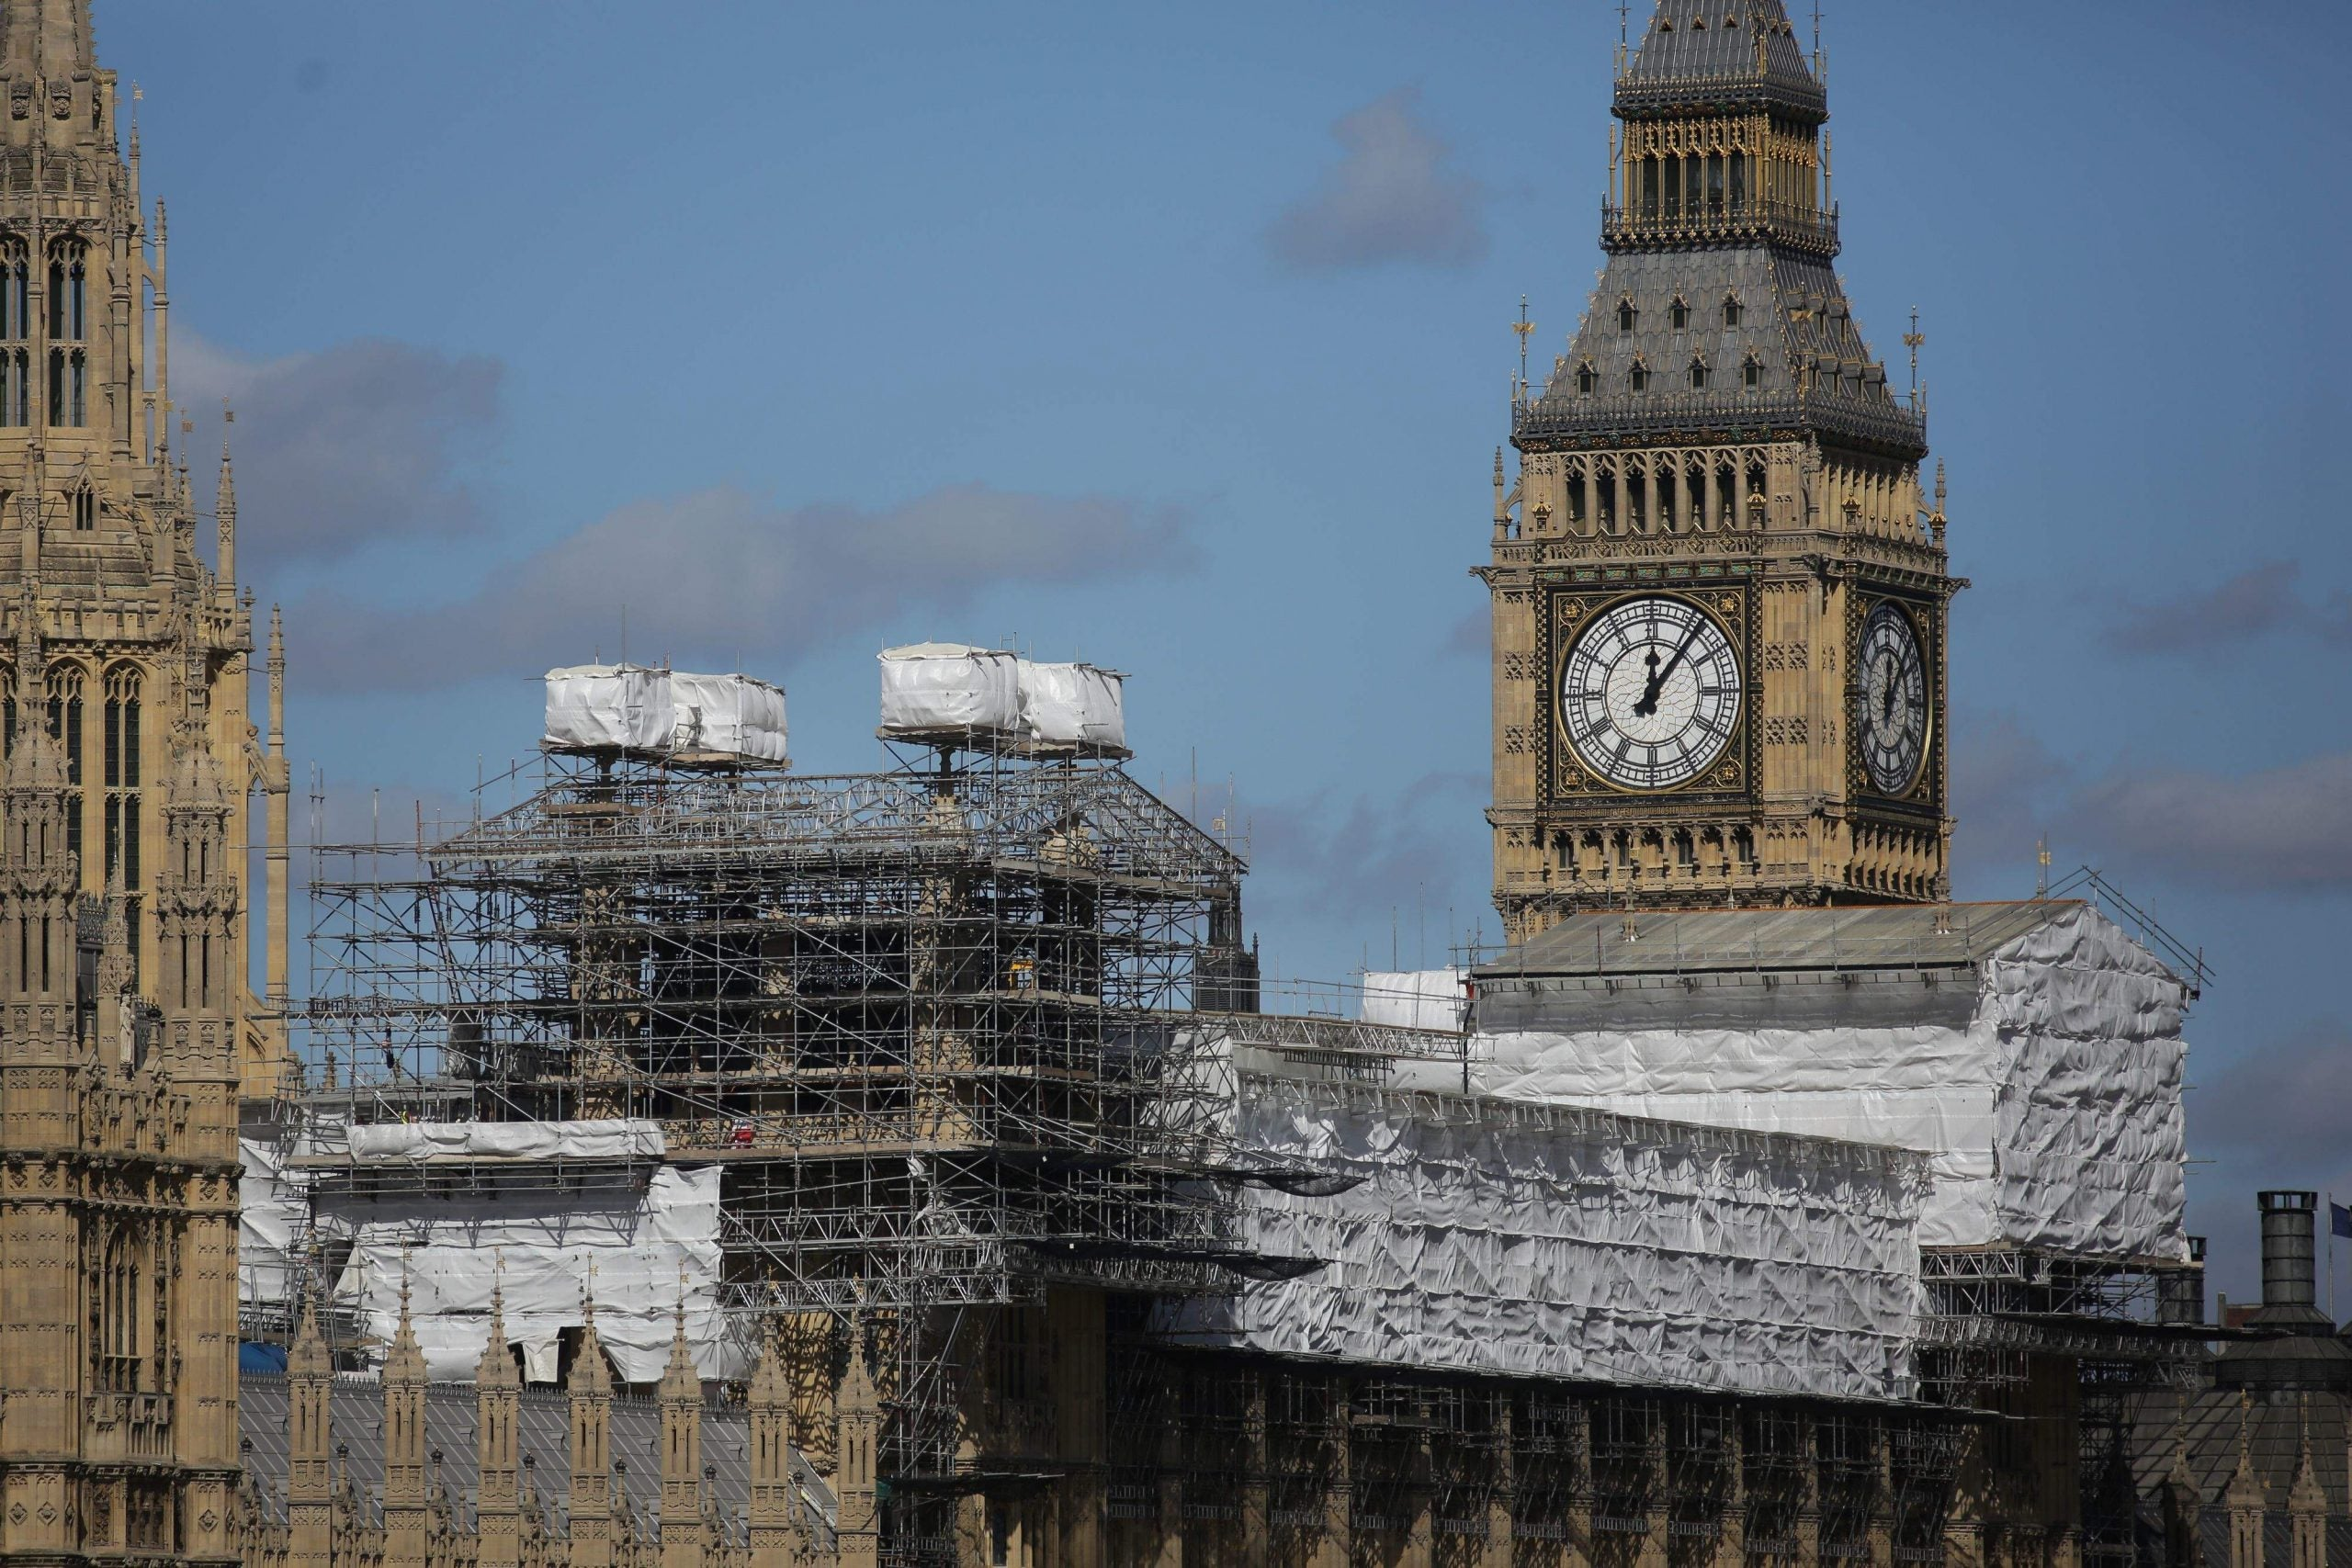 Renovating Parliament is an opportunity that's too big to waste